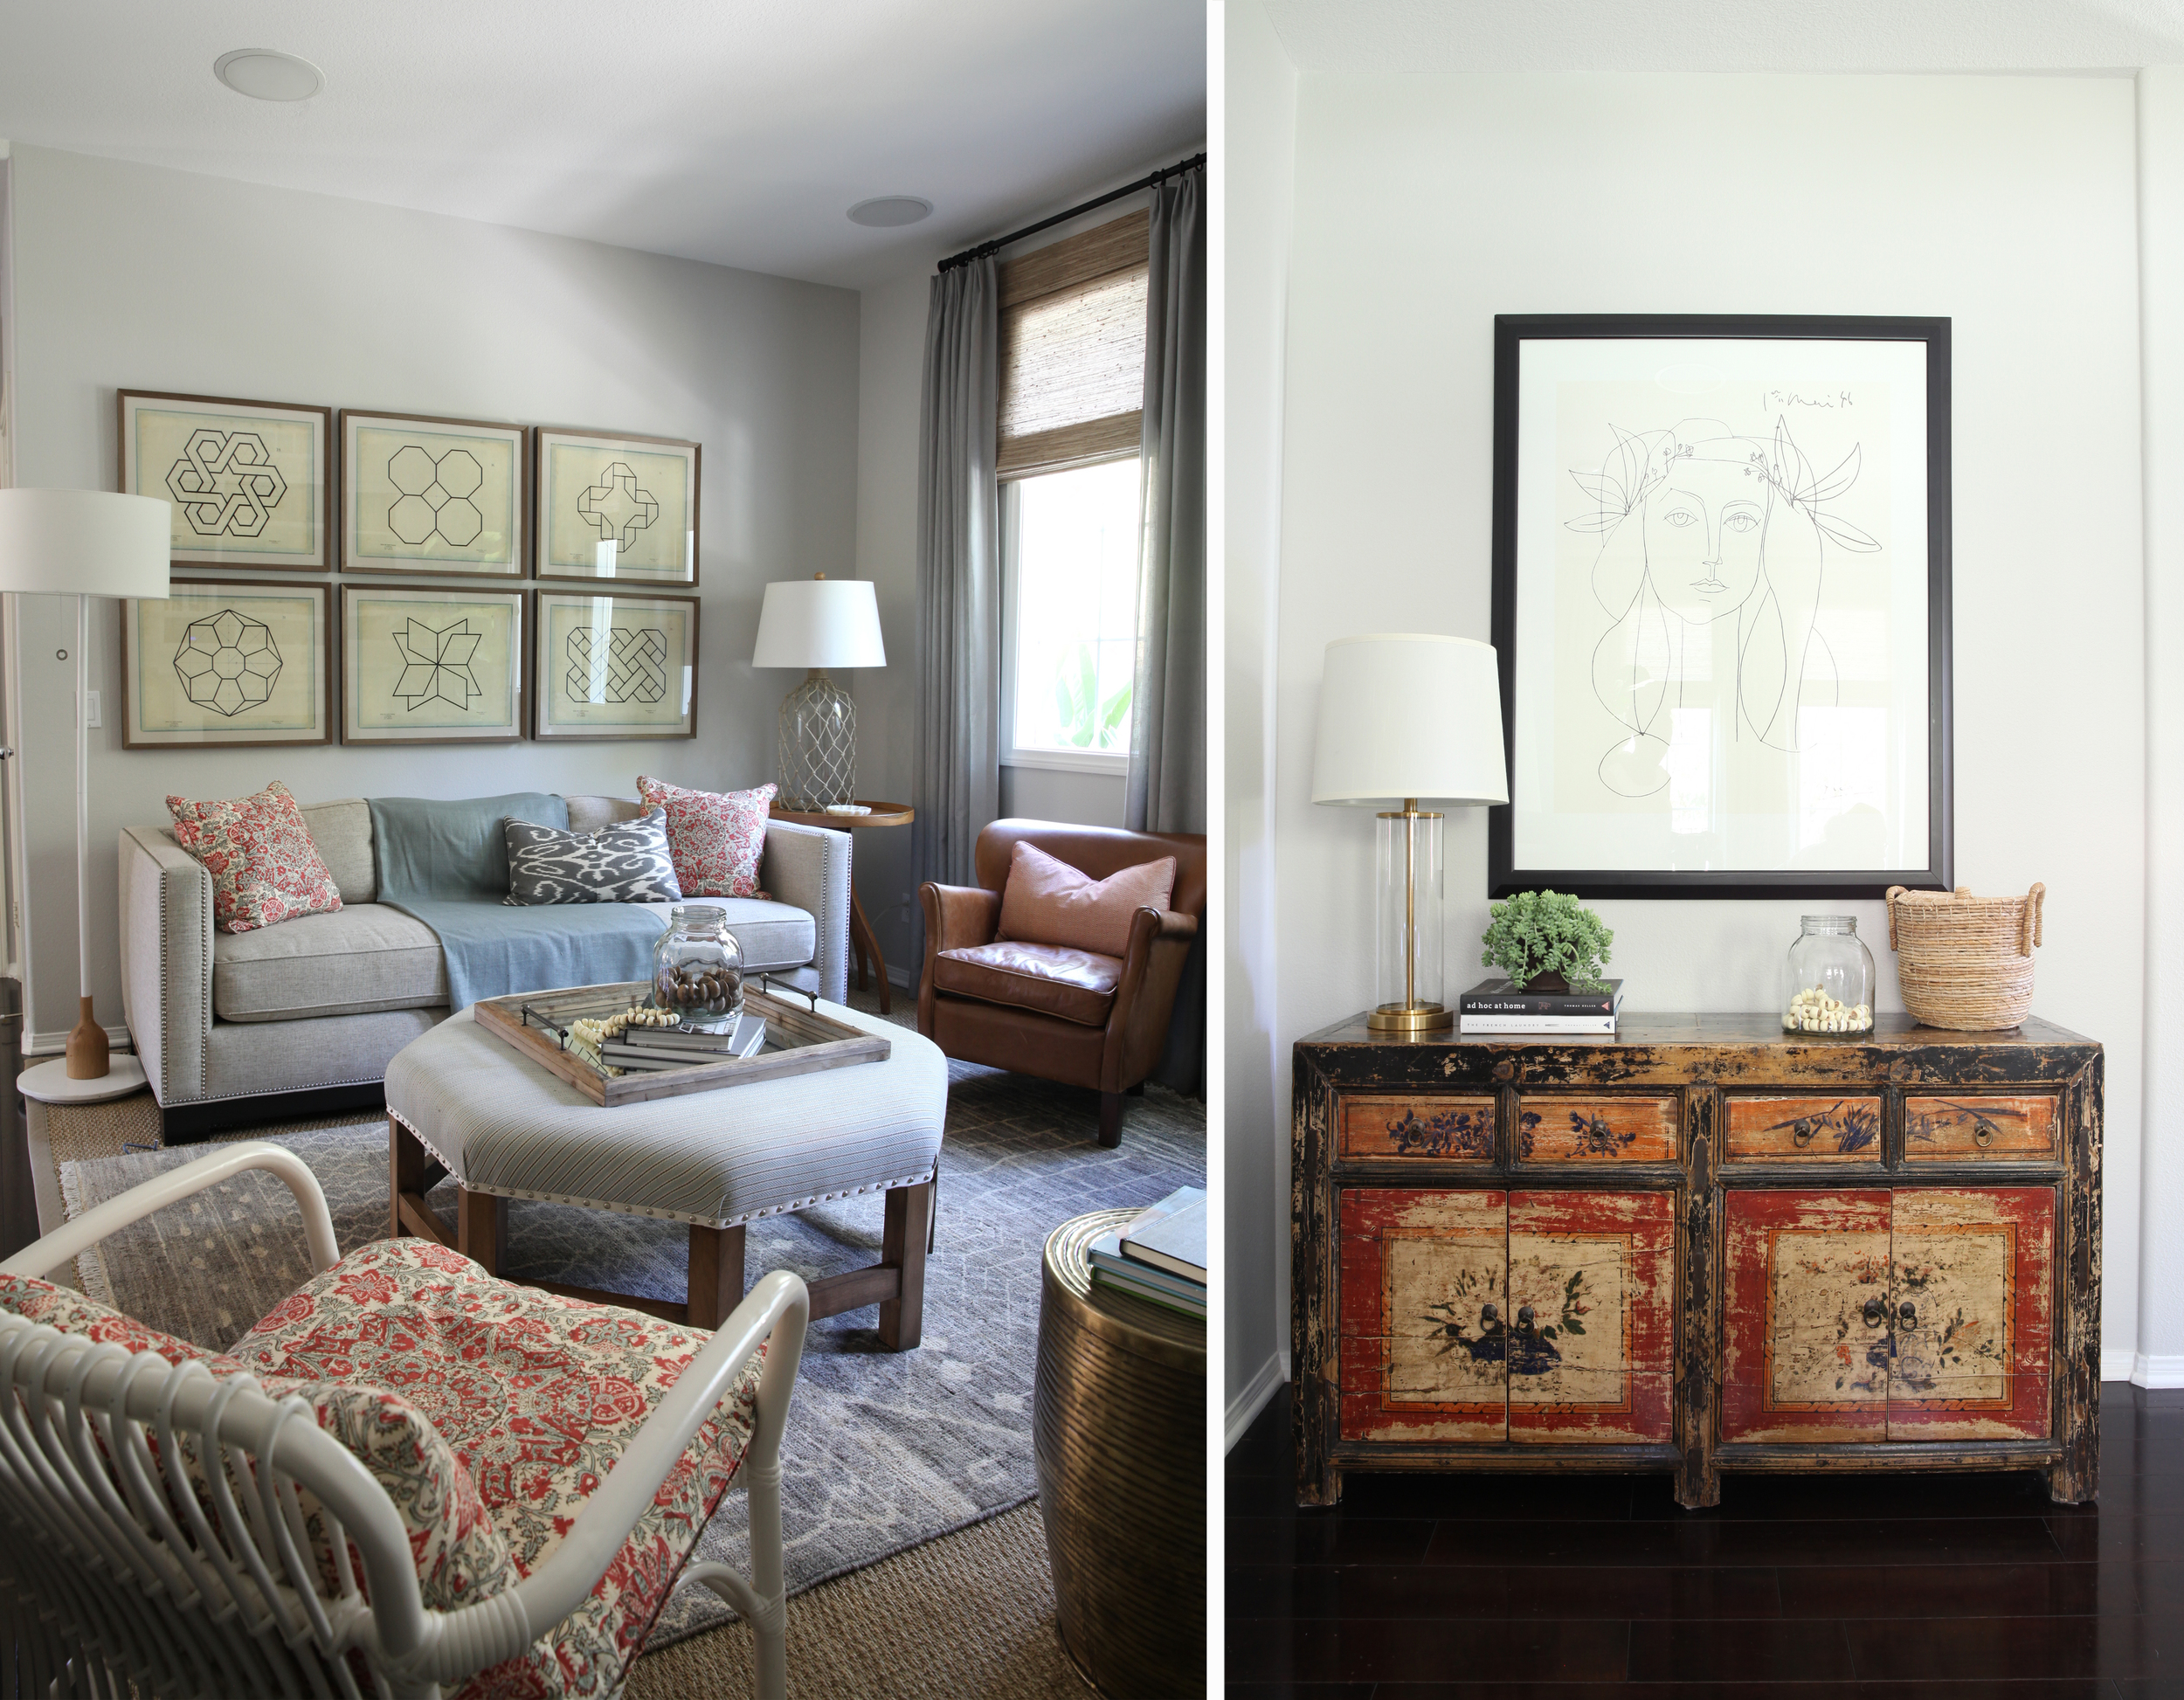 irvine interior designer brittany stiles orange county townhouse small spaces living room transitional.jpg